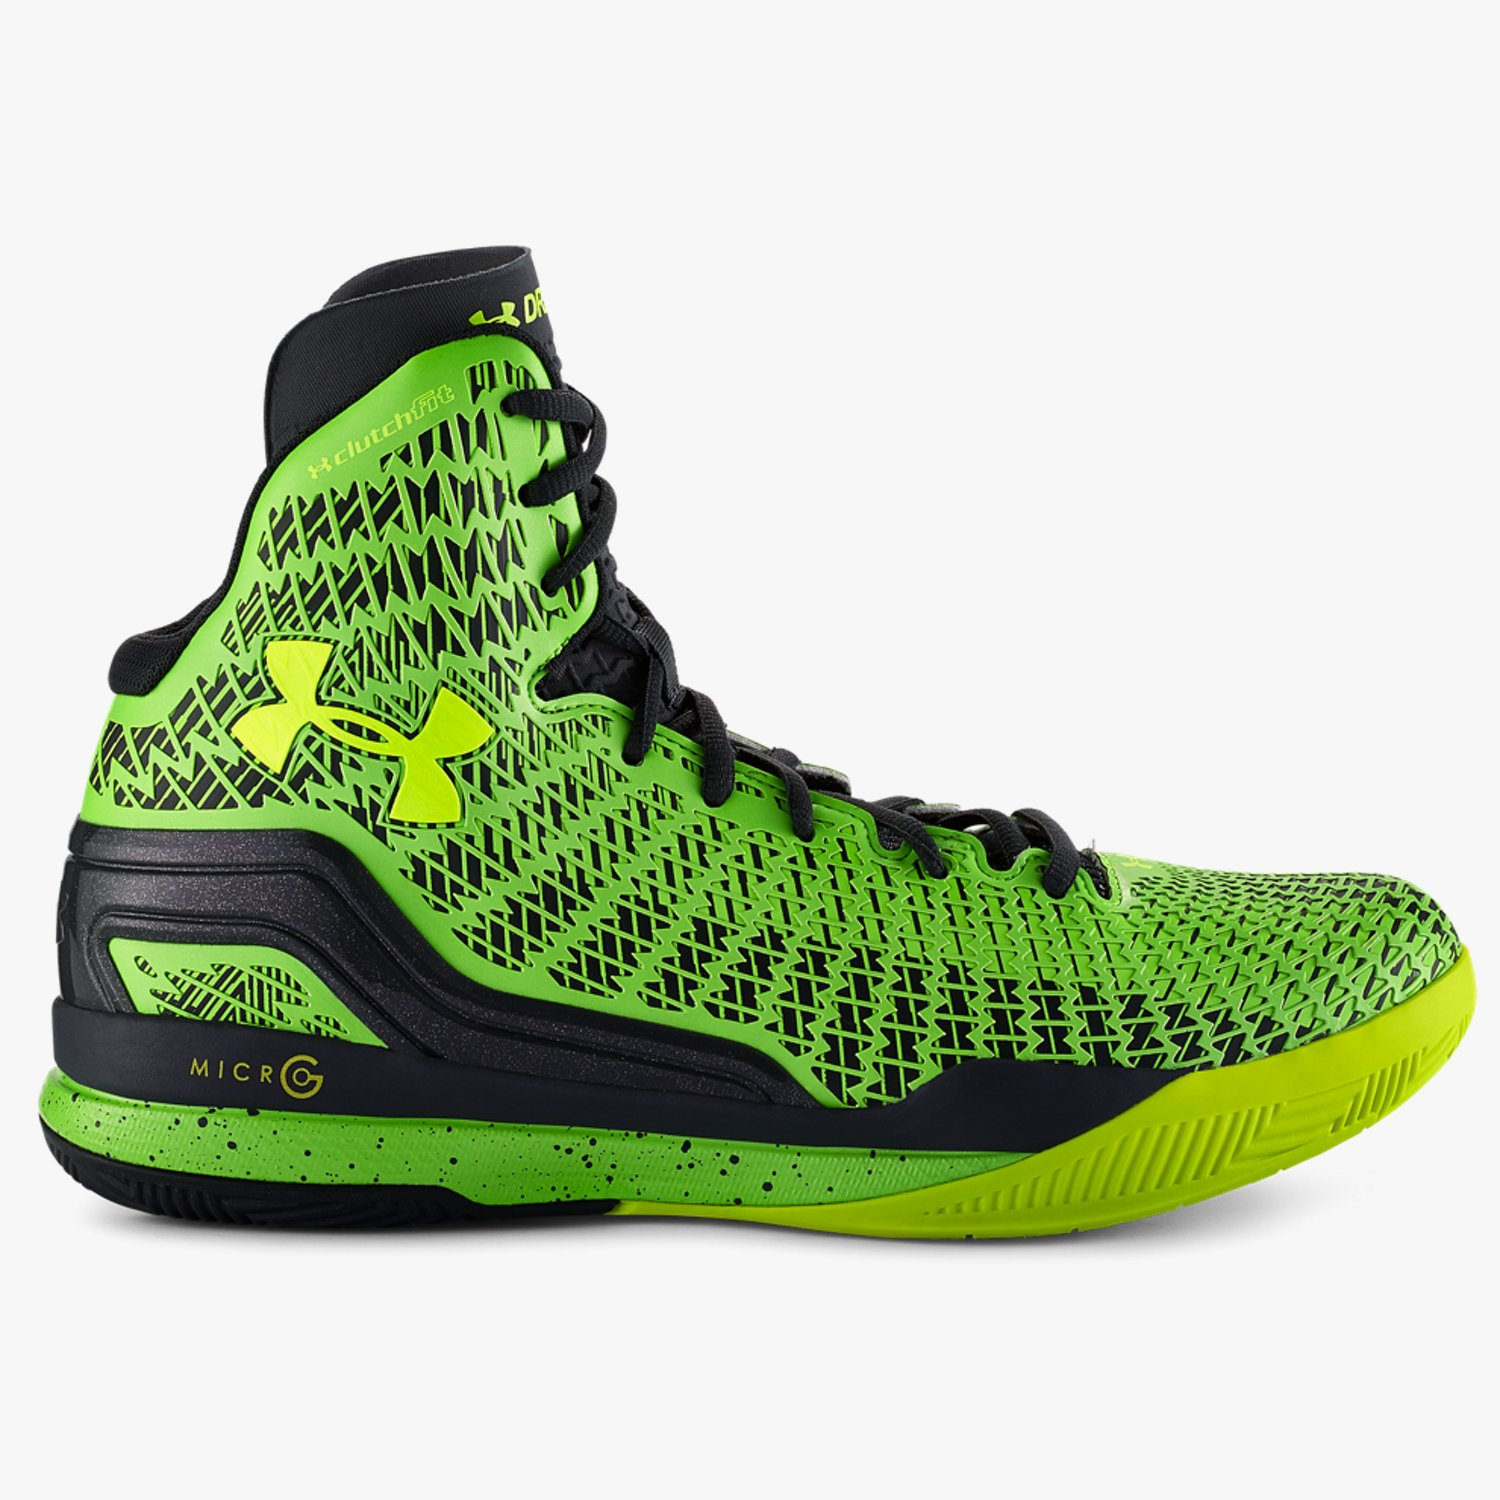 52350c8701f Under Armour UA ClutchFit Drive Mid Basketball Shoes Lead Hyper  Green High-Vis